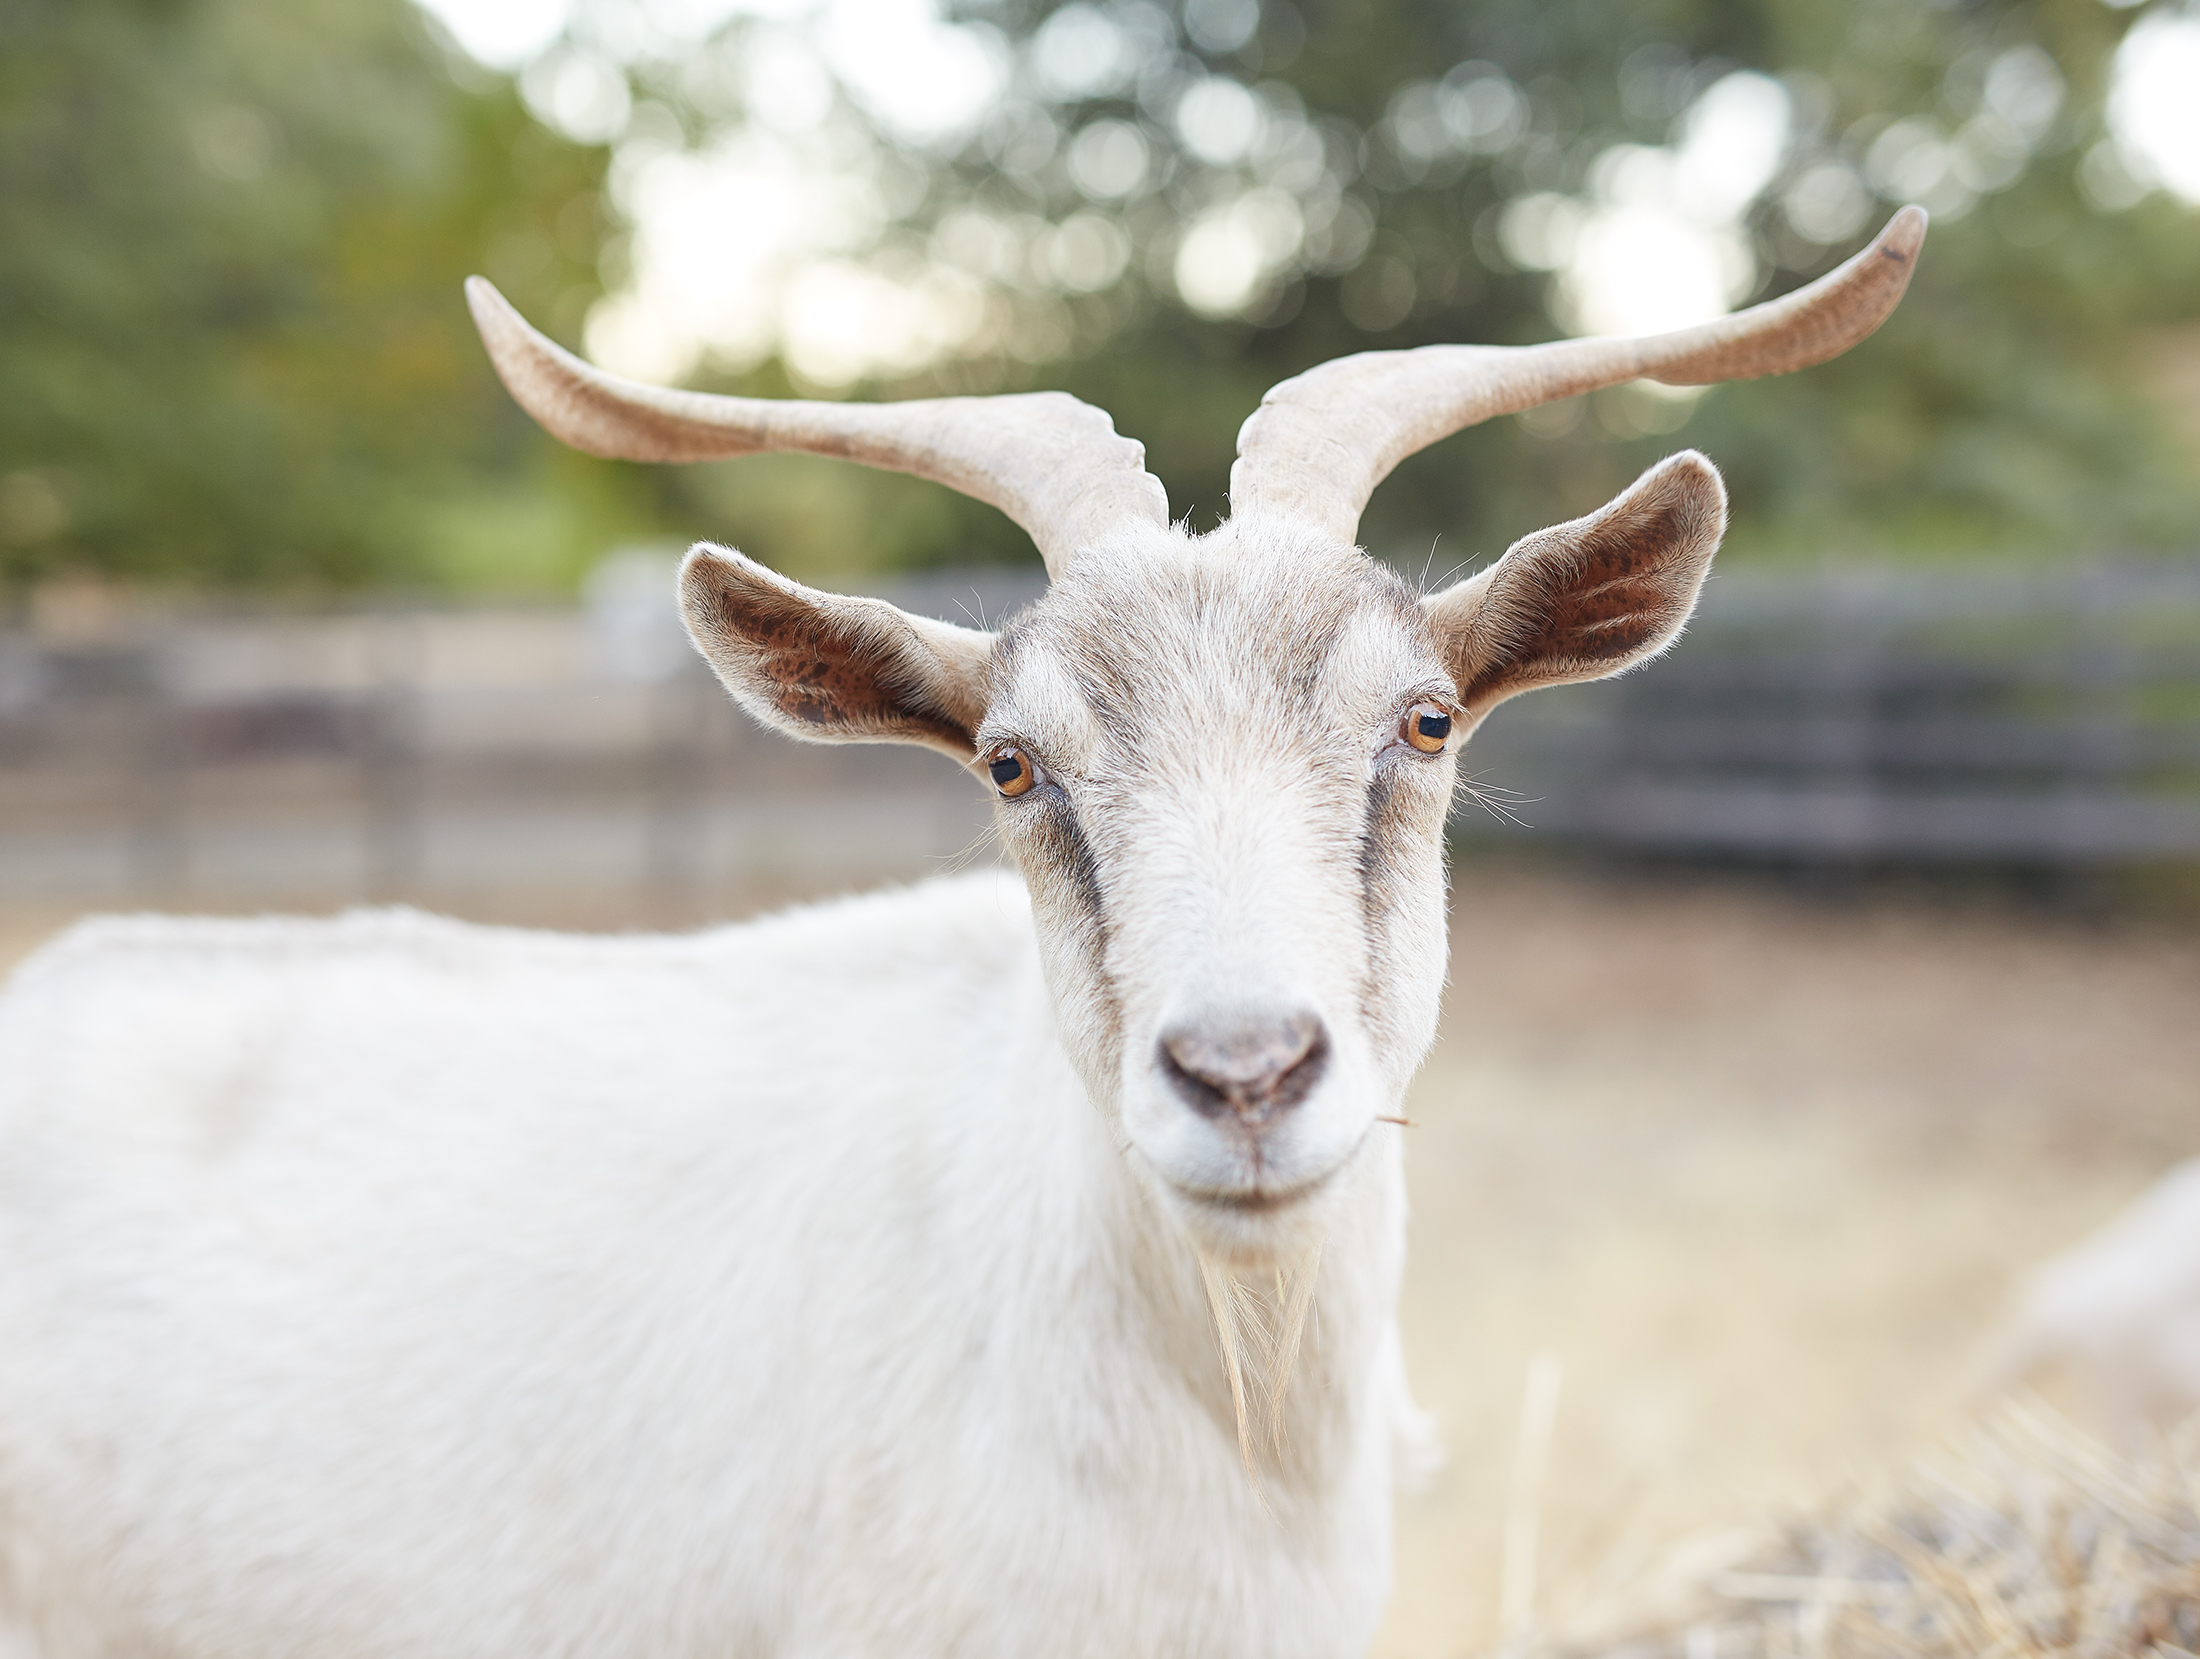 Black Sears (Goat).jpg